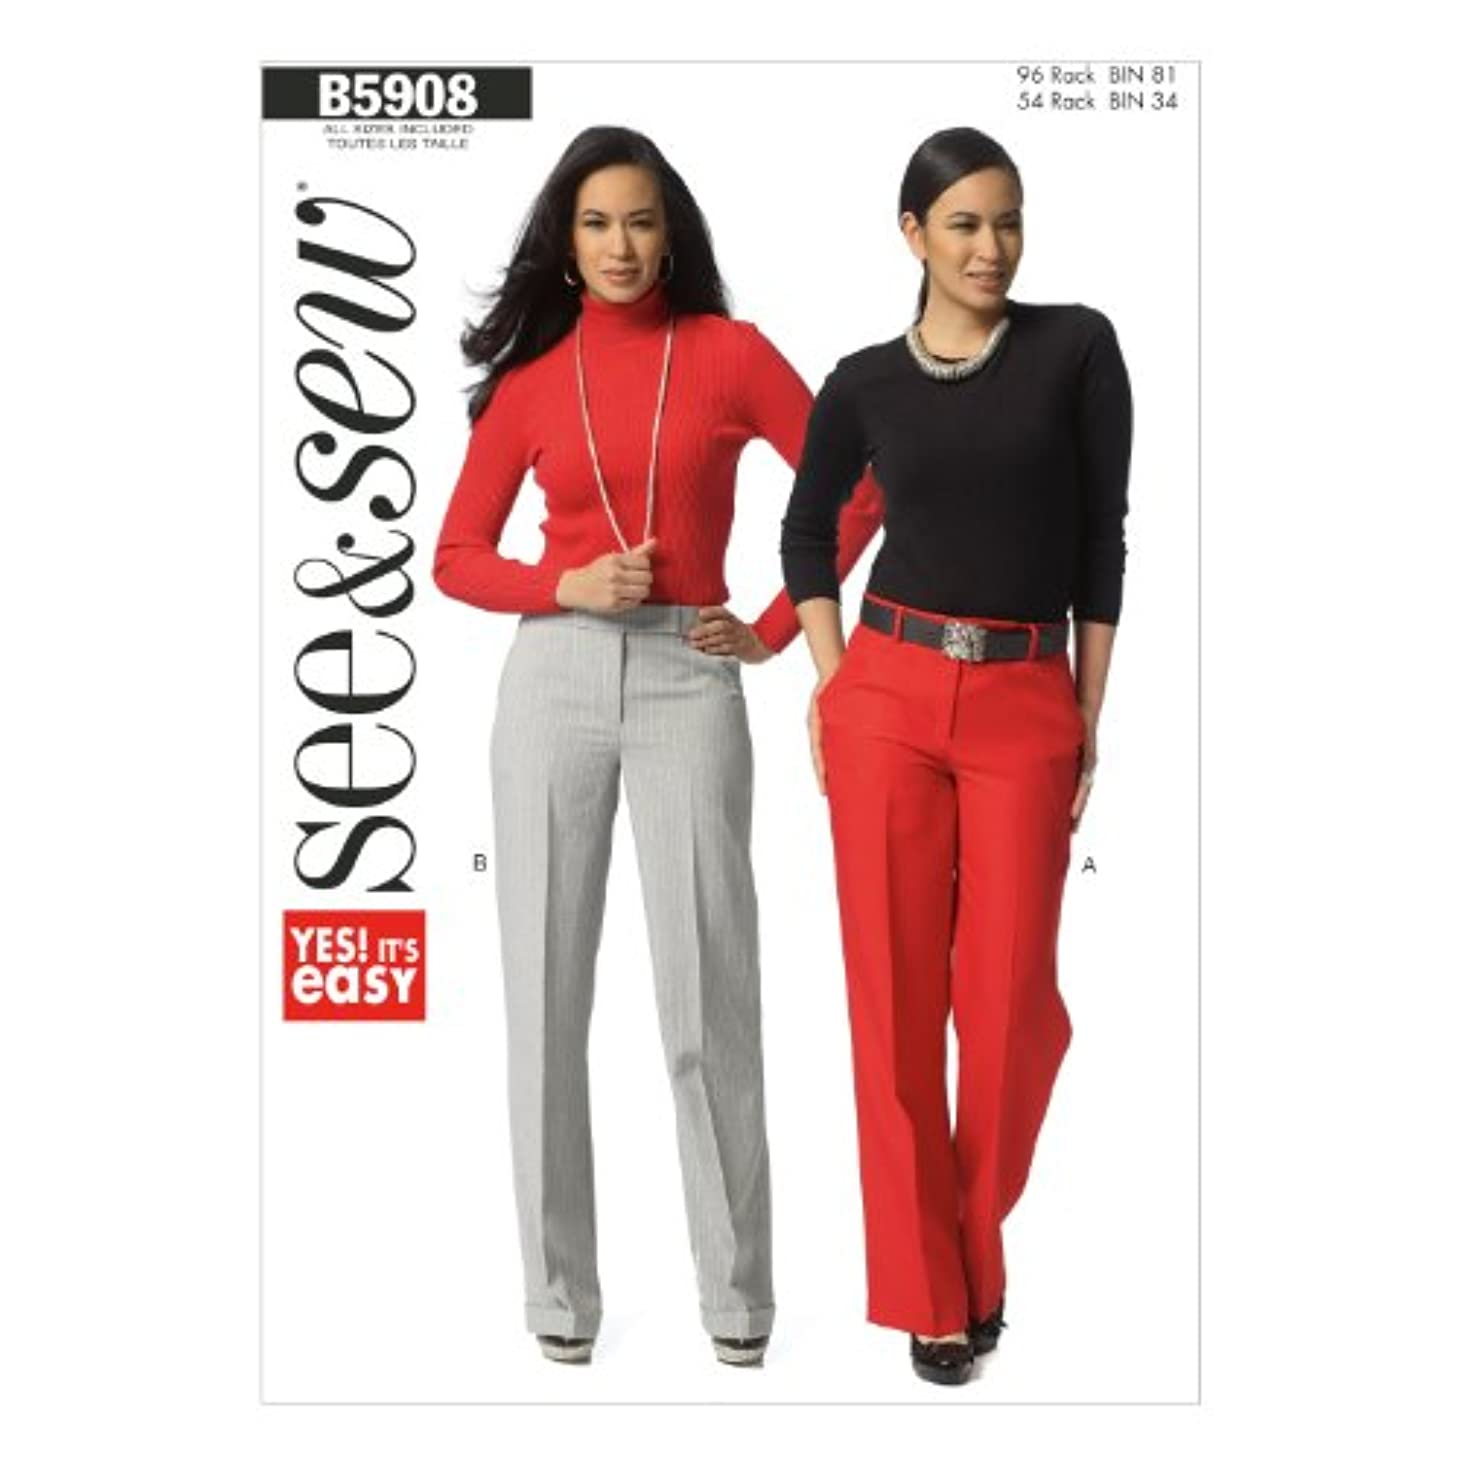 BUTTERICK PATTERNS B5908 Misses/Misses' Petite' Pants Sewing Template, Size A in One Envelope